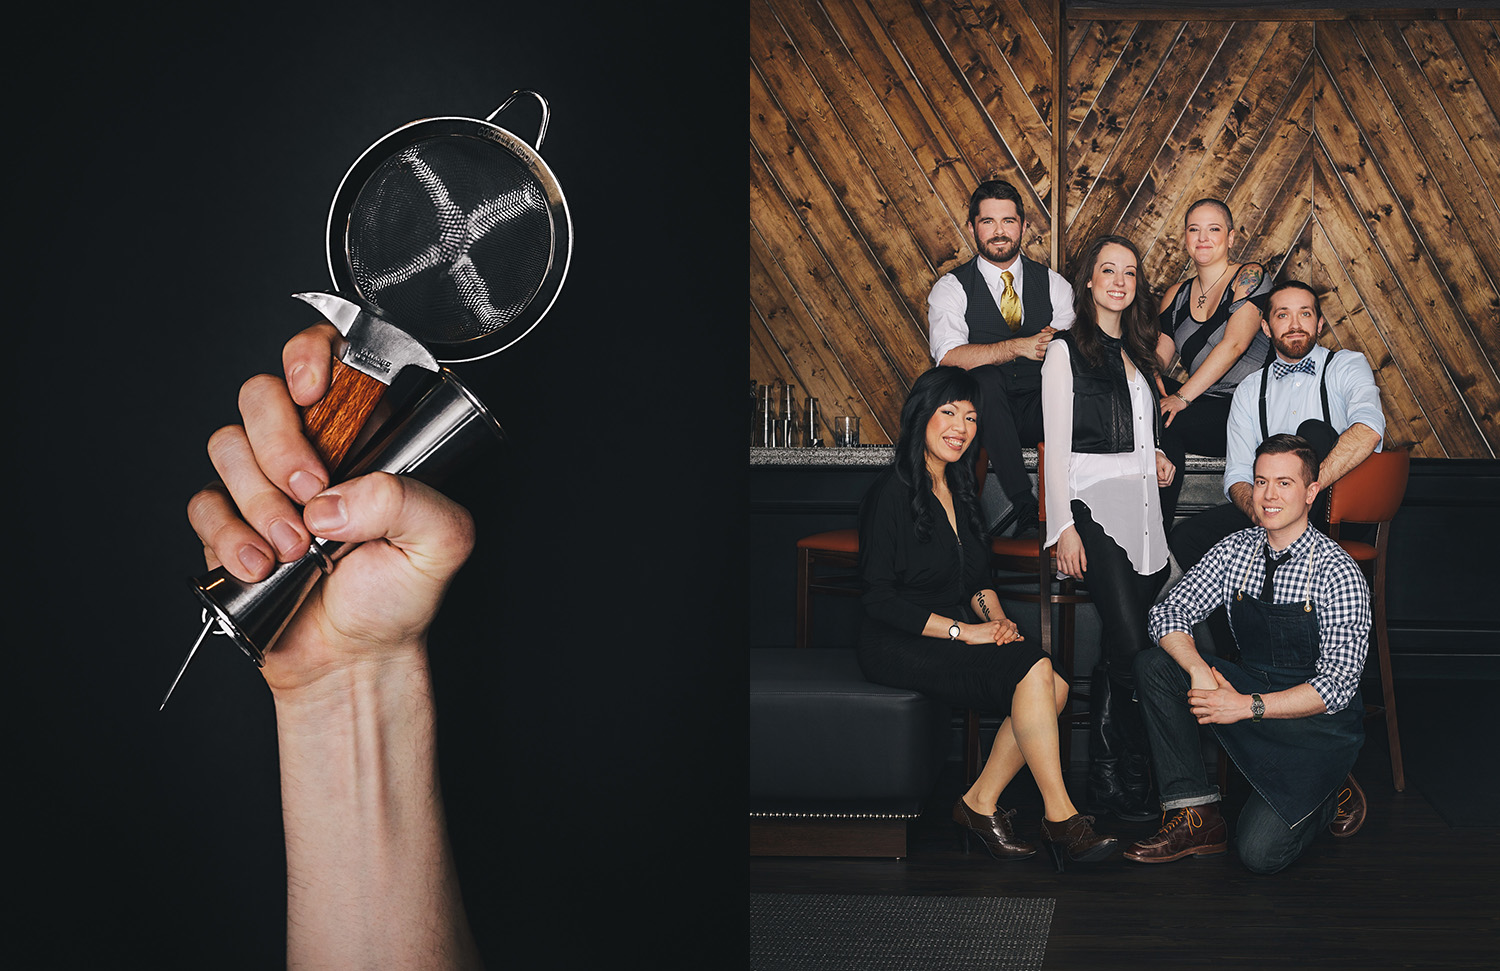 Improper Bostonian Boston's Best Bartenders Cover photographed by Adam DeTour